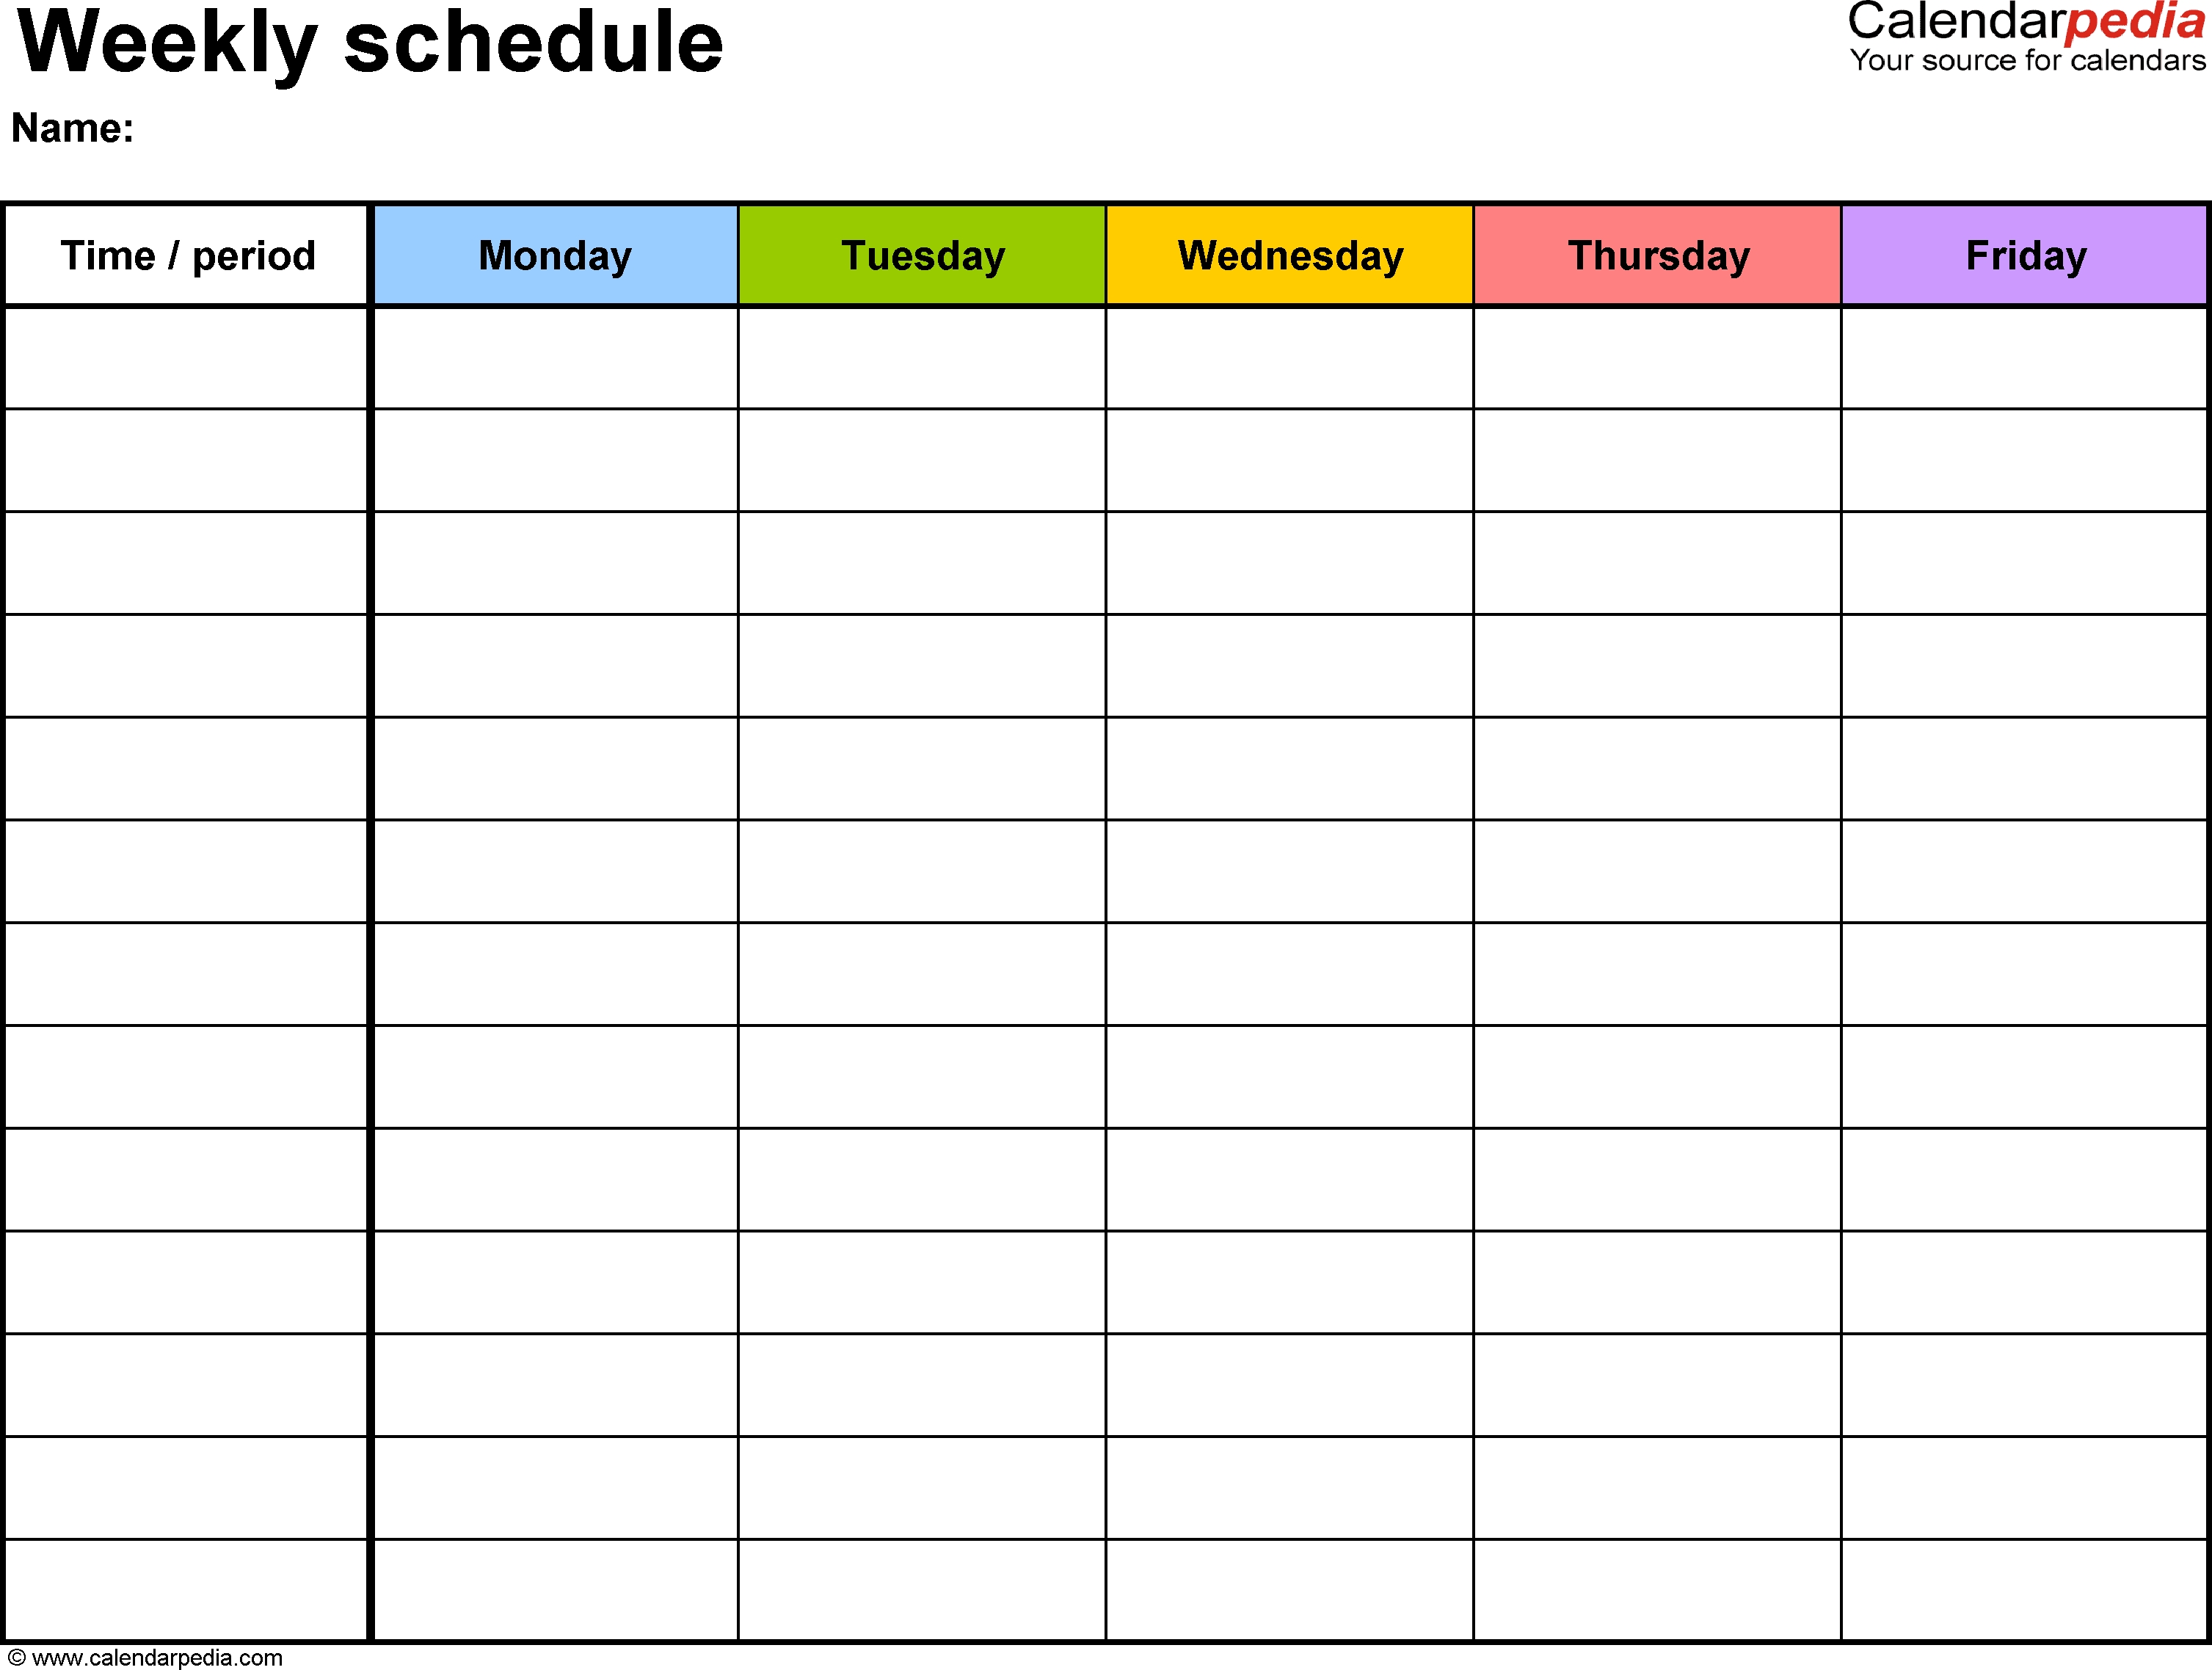 Free Weekly Schedule Templates For Word - 18 Templates regarding Blank Monday Through Friday Weekly Calendar Without Download